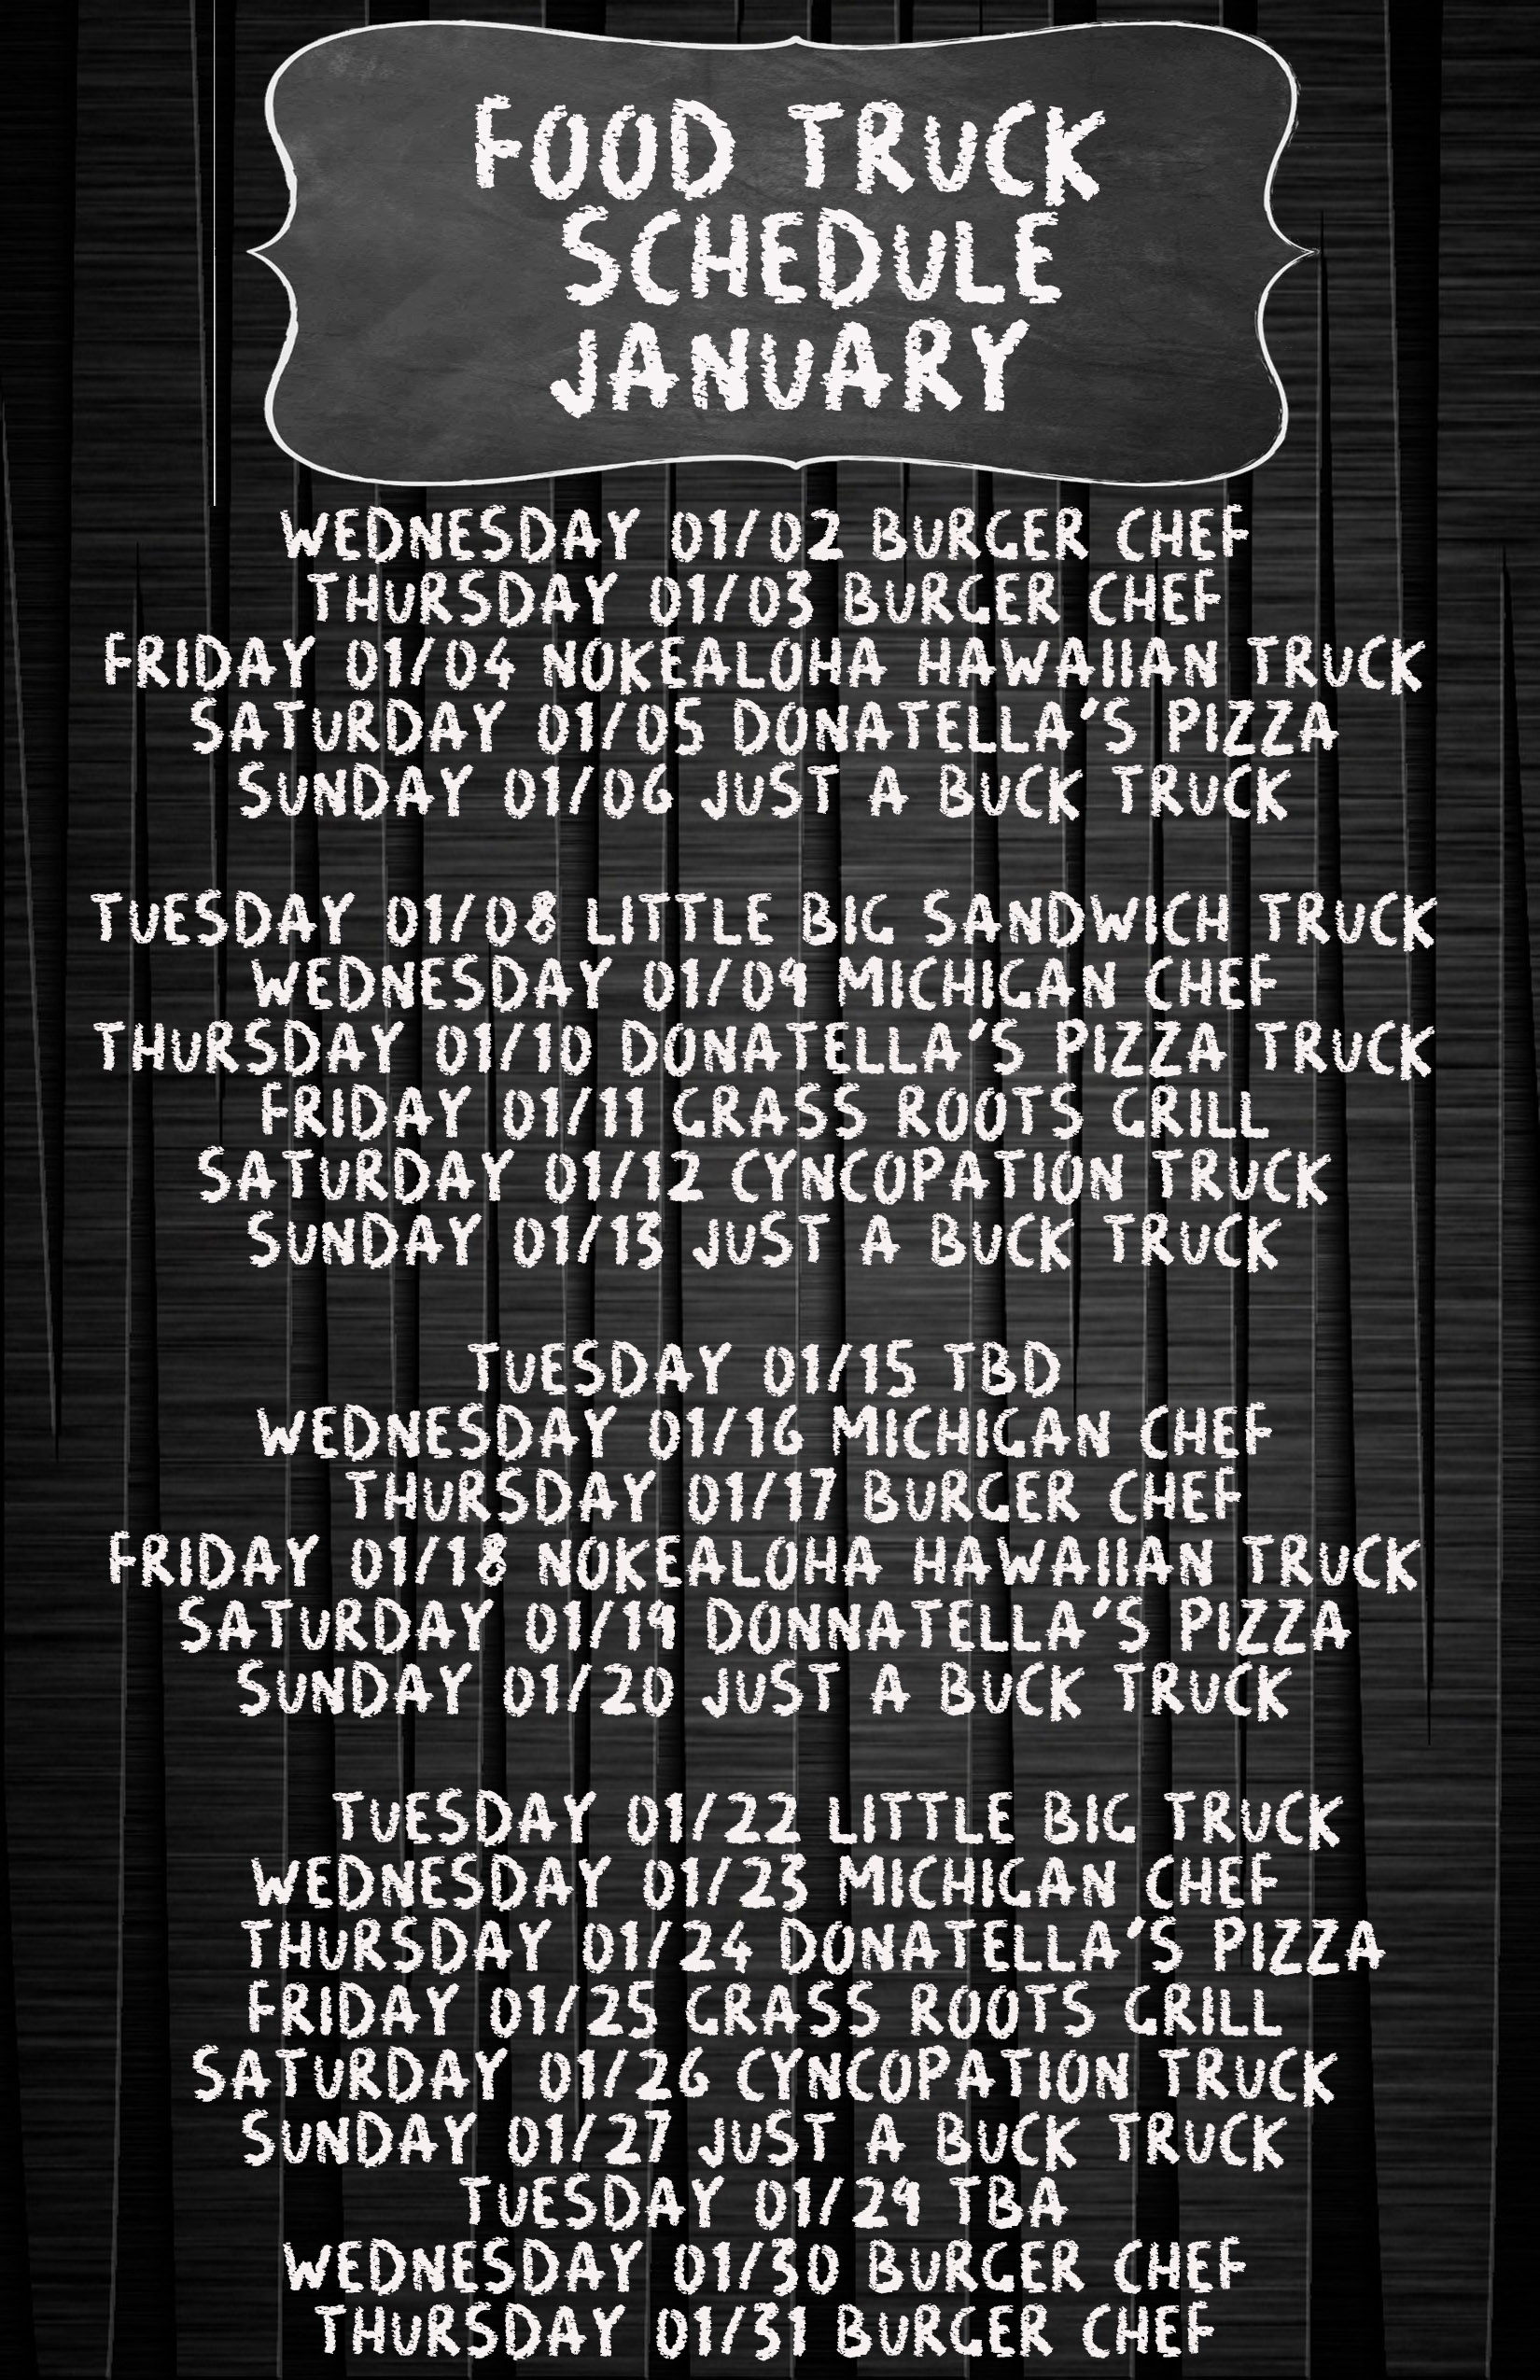 january food truck schedule